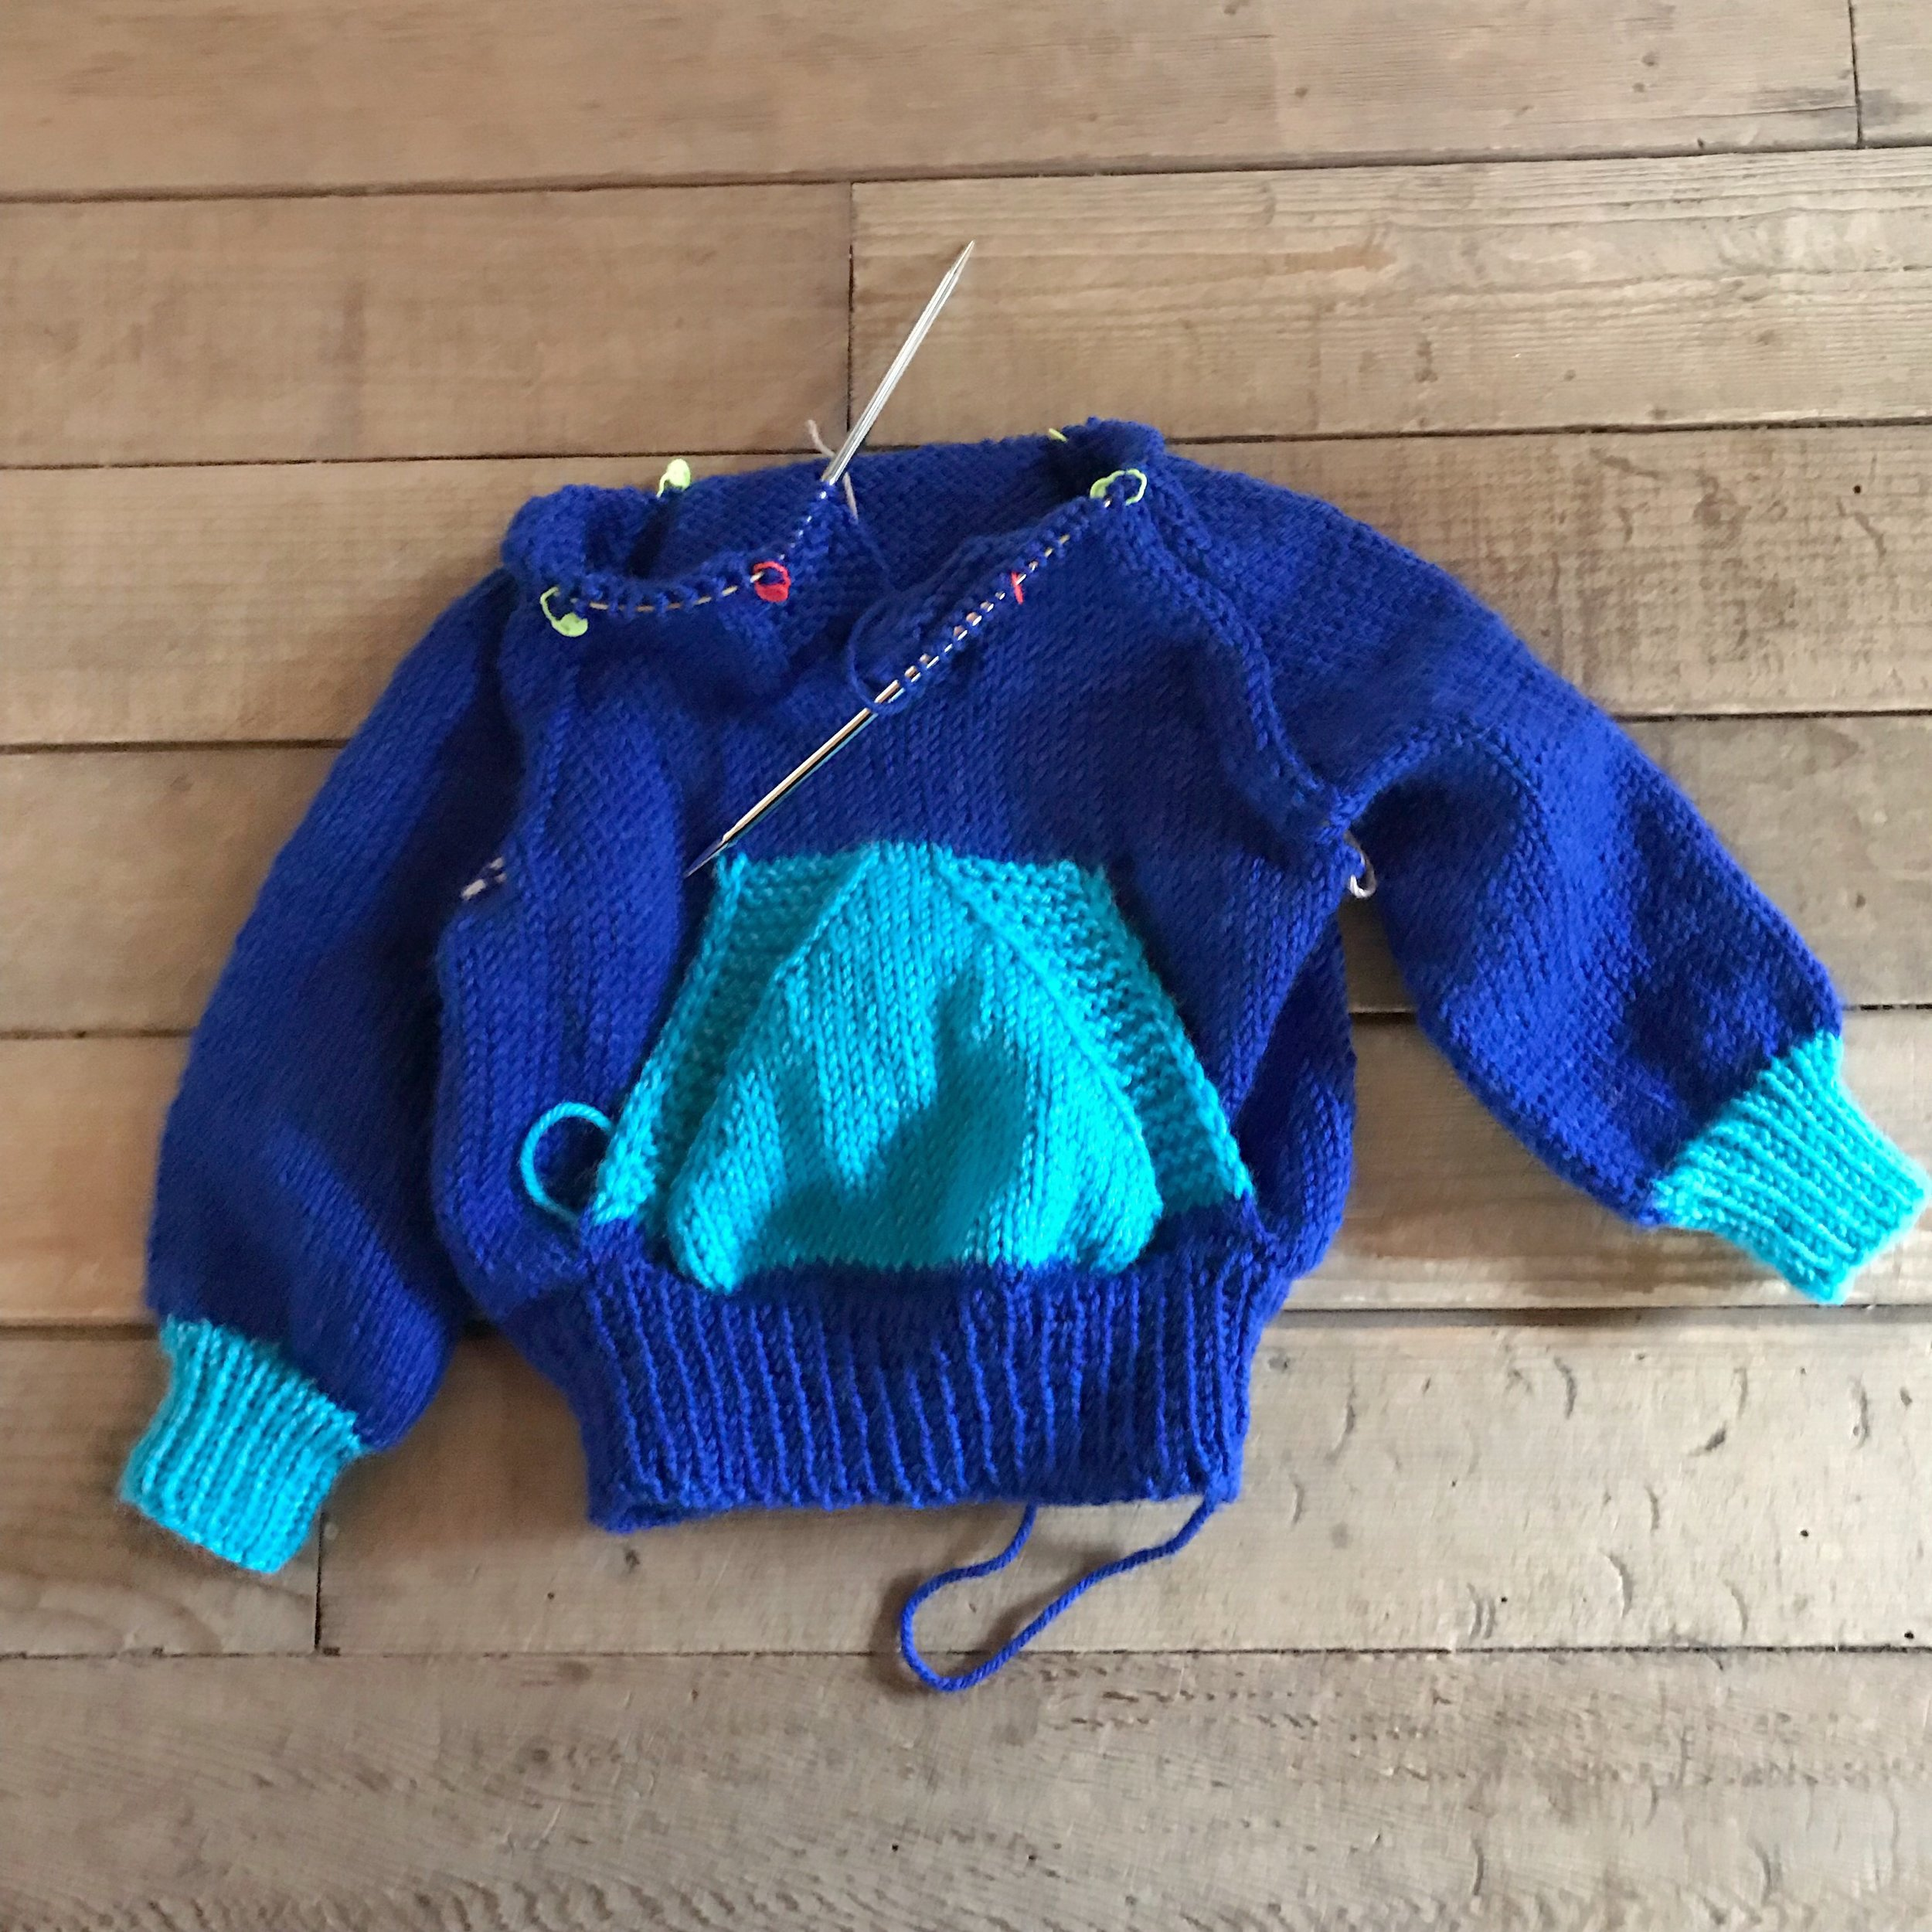 CURRENT CLASSES & EVENTS - Wonderful WallabyNovember 7, 14, 28, & December 5, 5:00pm-7:00pm | in progress | Ann MinerThe Wonderful Wallaby is the knitted version of a classic hooded sweatshirt. It is knit in the round from the bottom up until the hood, which is knit back and forth. The stitches for the pouch pocket are picked up from the body, and knit back and forth. Sleeve shaping is done via raglan decreases. Sizing is child's size 2-12.Prerequisites: You should be comfortable casting on, knitting, purling, and casting off, and should be familiar with a method for knitting small tubes—double points, two circulars, or magic loop.Holiday Girls Night OutDecember 6, 5-9pmDetails above!Santa's WorkshopDecember 12, 14, 19, 21, 5:00pm-7:00pm | no chargeWhether you're working on last-minute gifts or holiday ornaments, let Yarn Folk be your place to work among friends!Stay tuned for January class schedule!